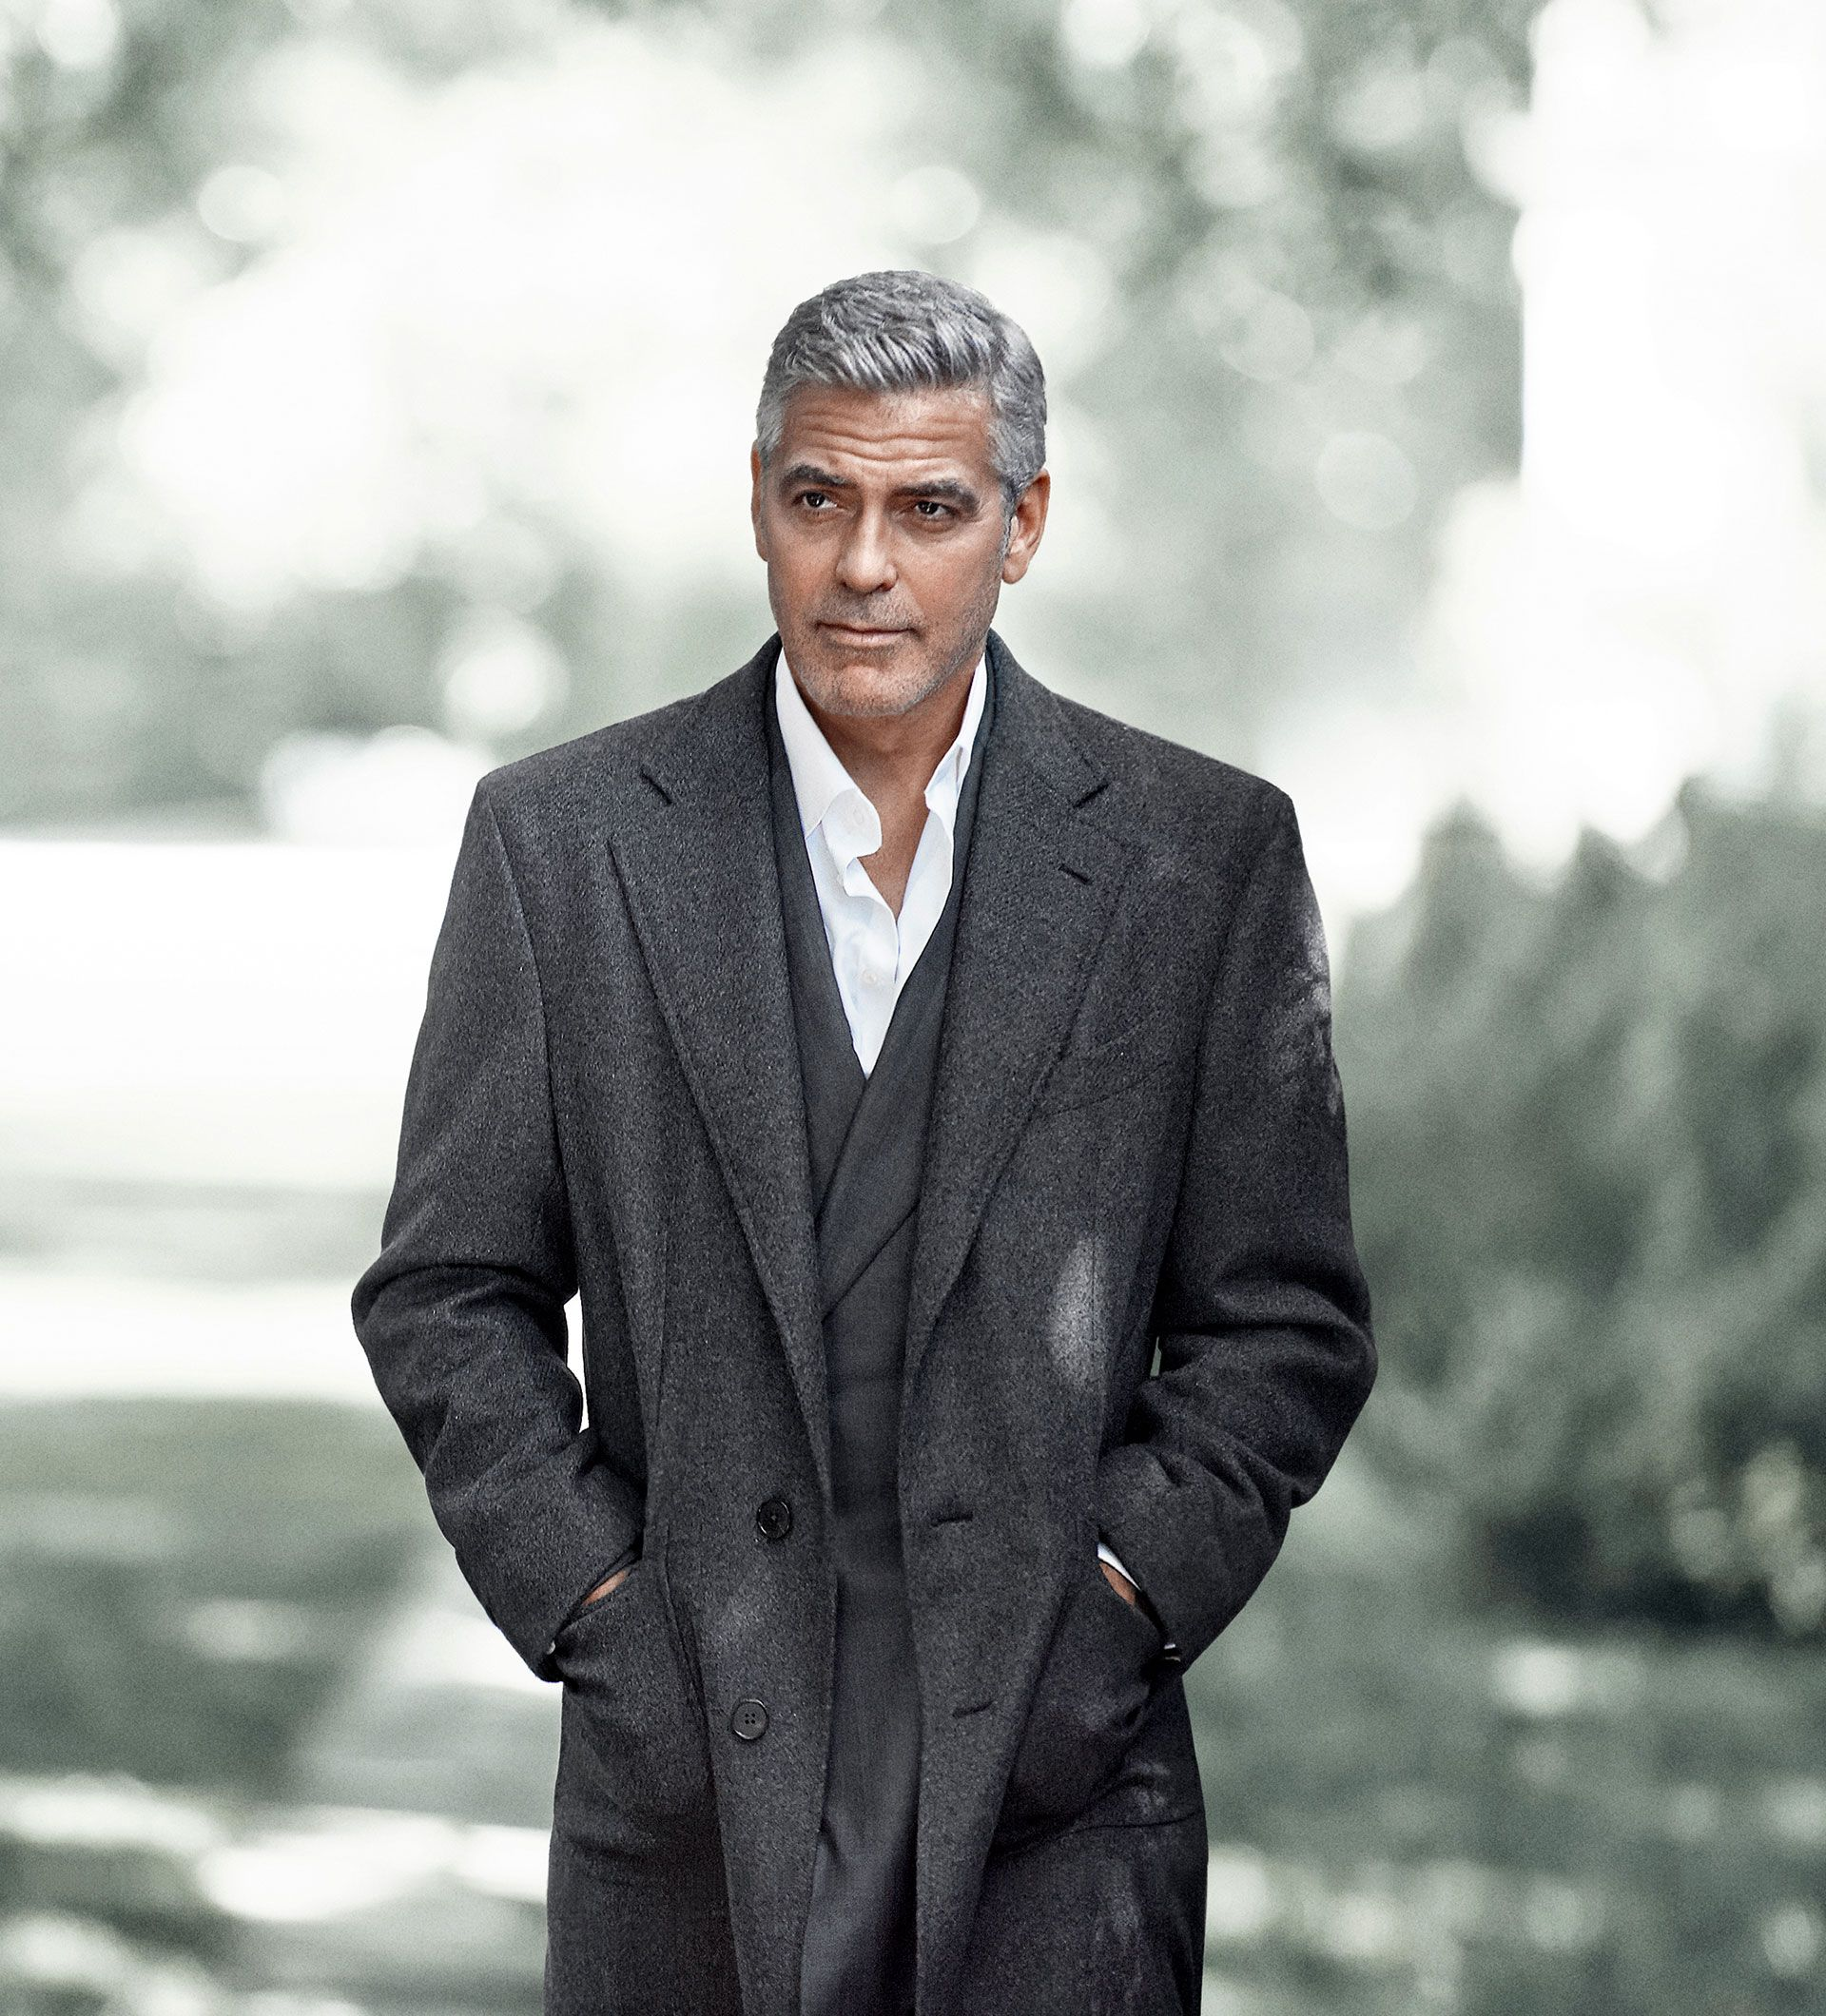 george clooney gq   Google Search Visage Business casual men 1920x2120